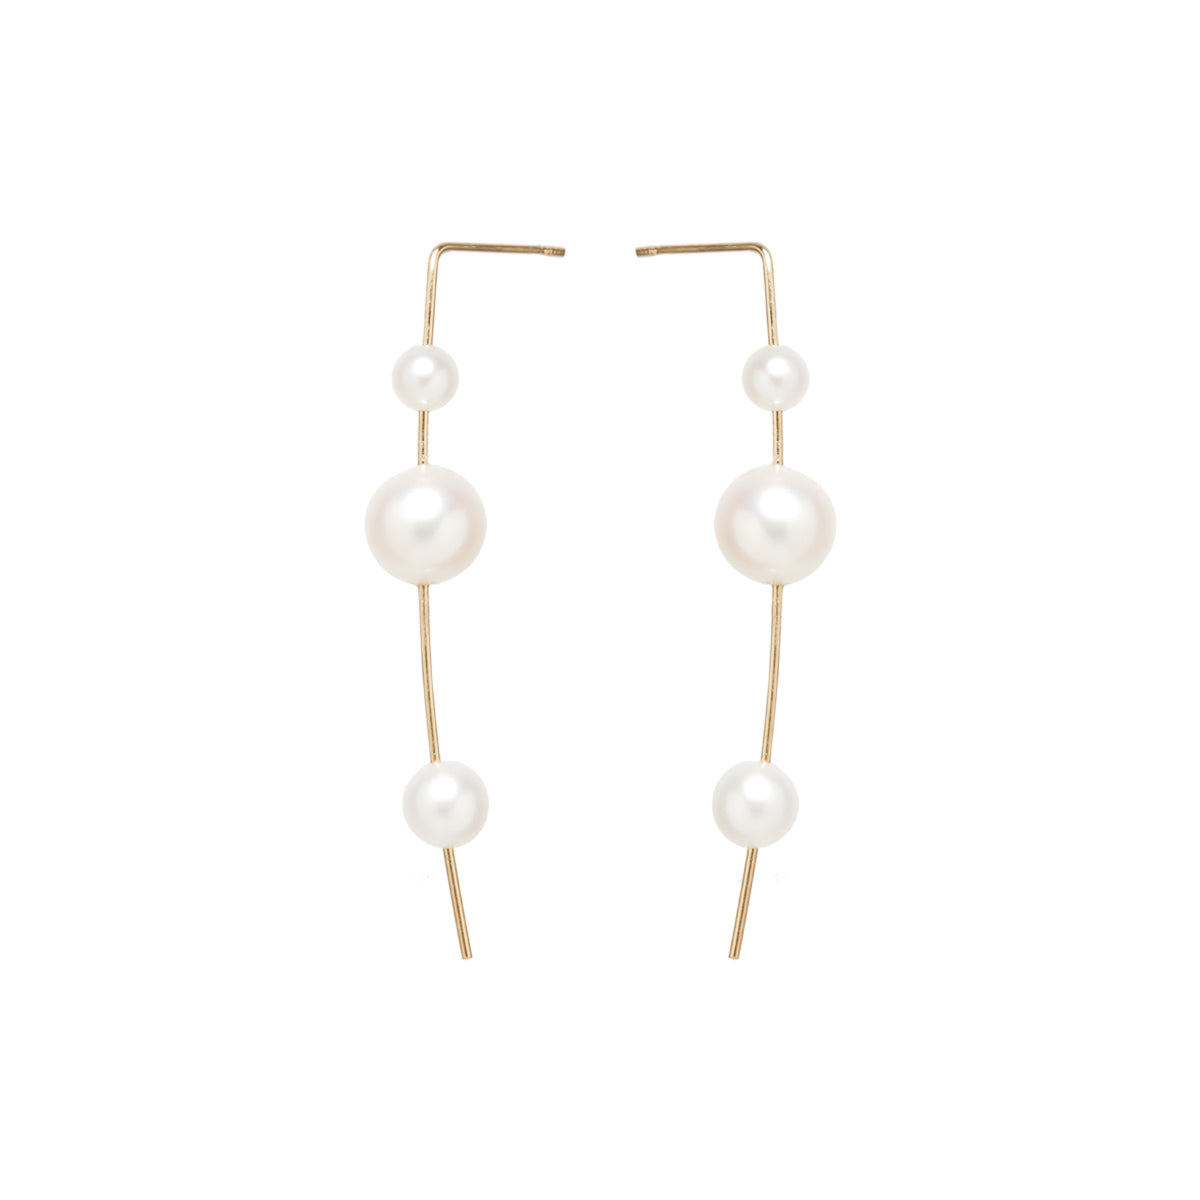 Zoë Chicco 14kt Yellow Gold 3 Graduated White Pearl Wire Earrings